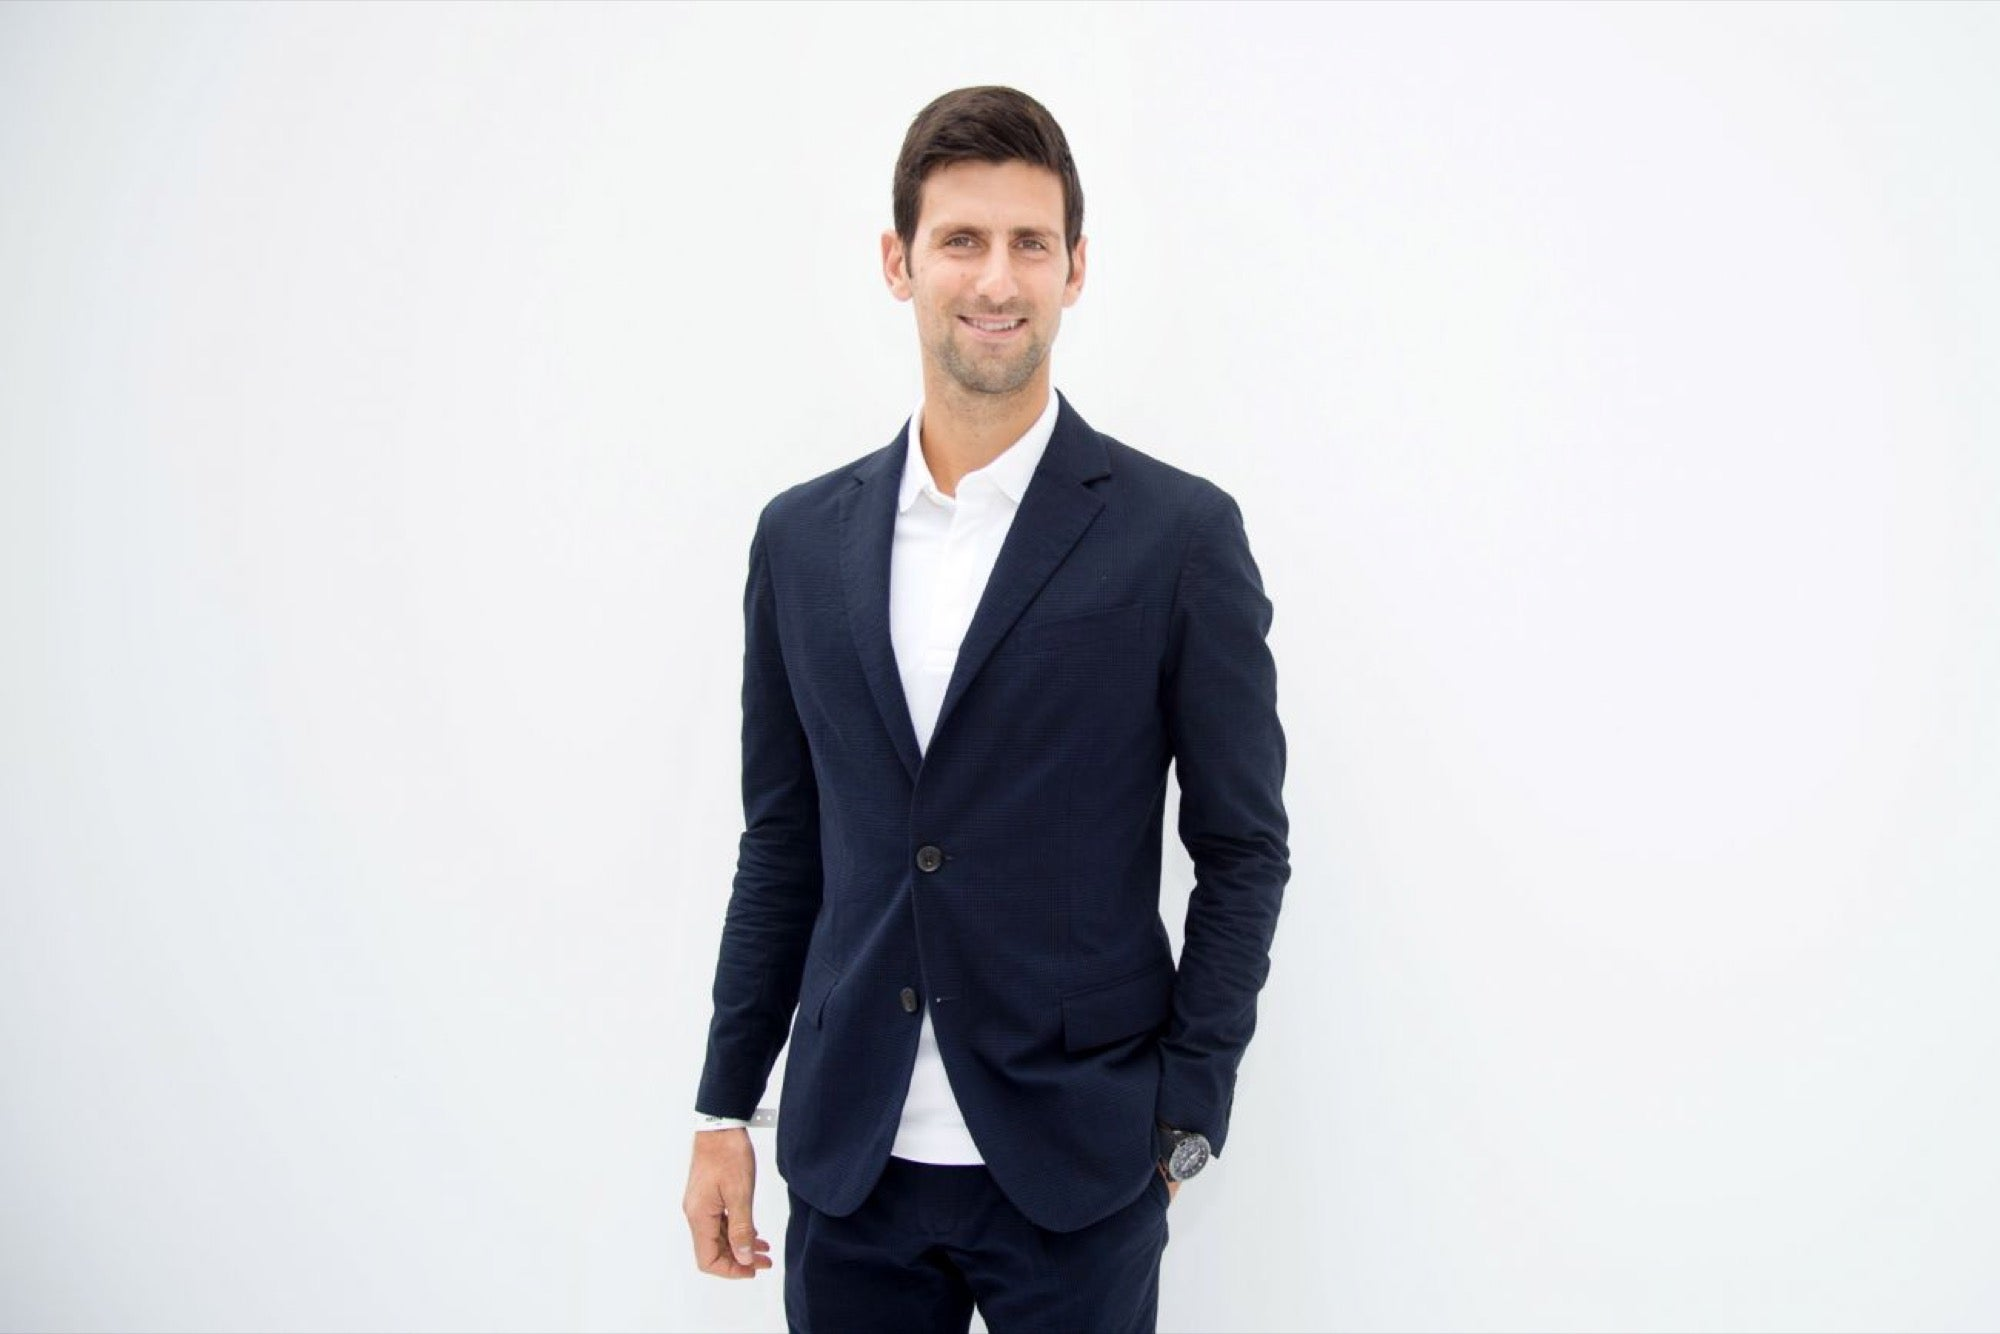 Novak Djokovic Becoming 1 In The World And Overcoming The Odds